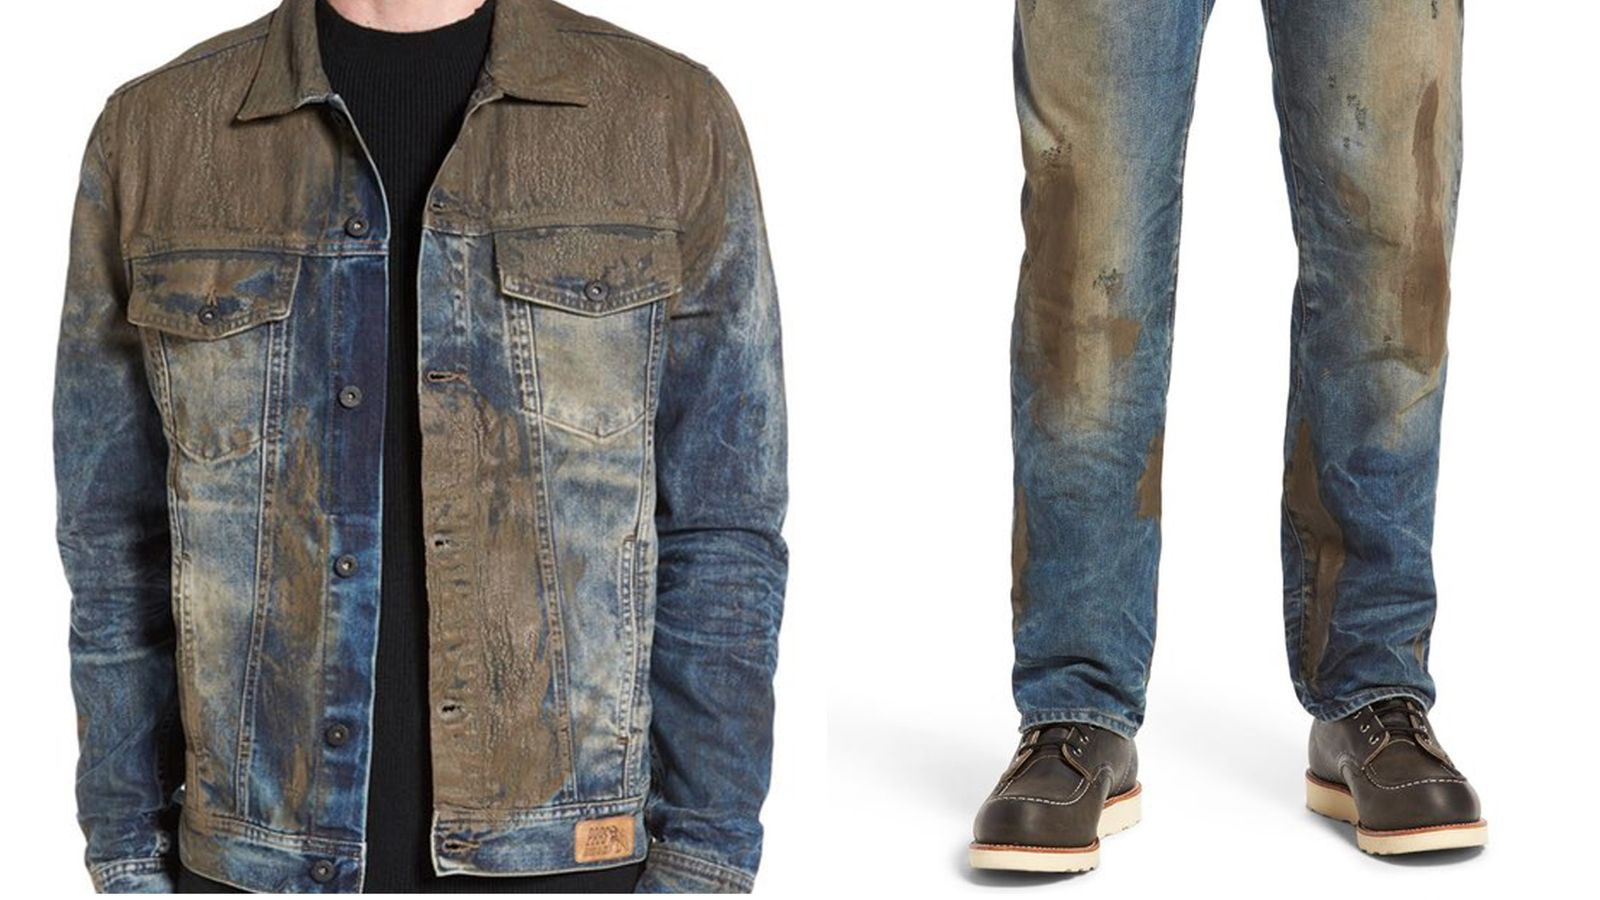 'Muddy' men's jeans on sale for £330 at Nordstrom in US